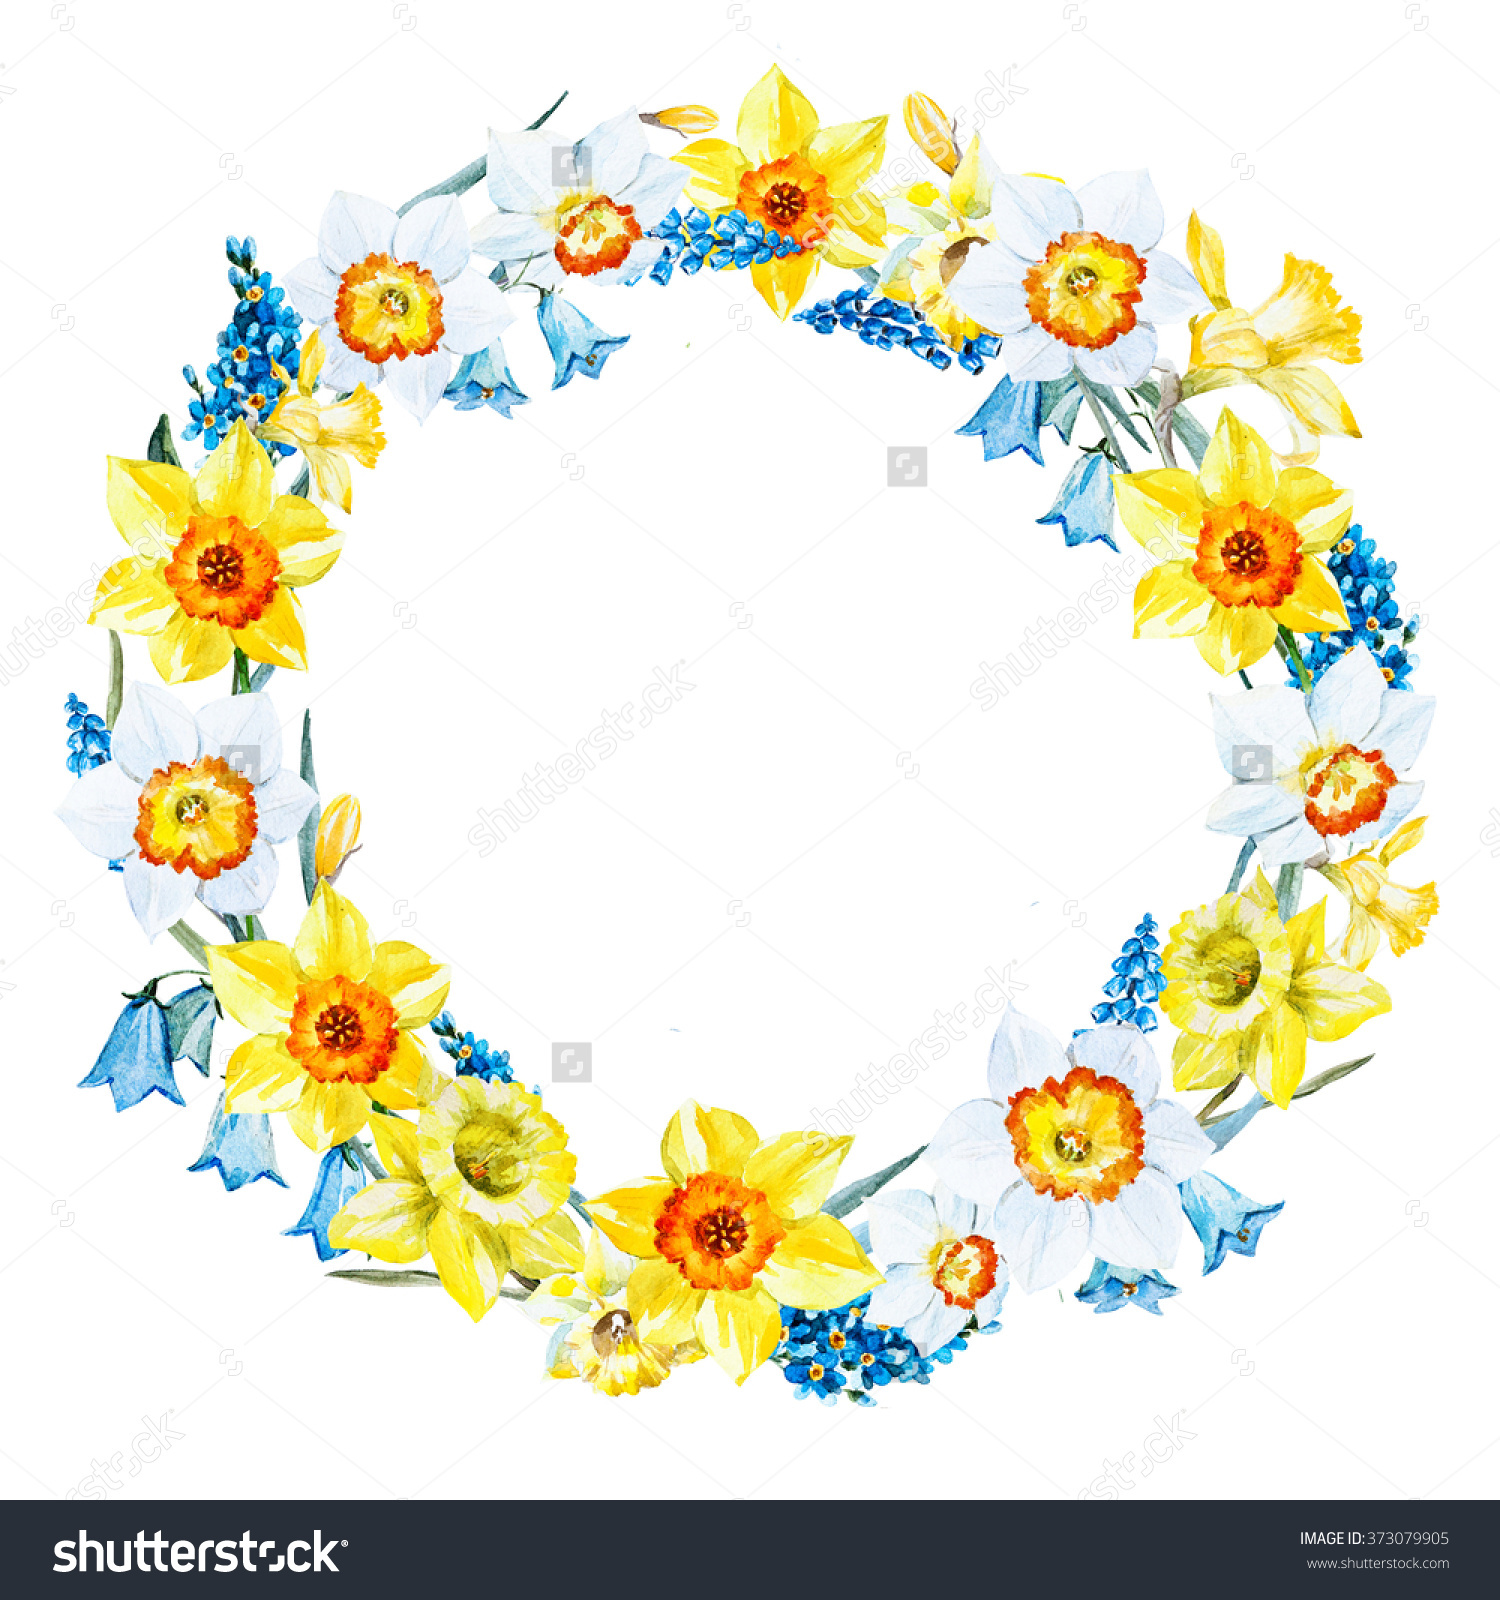 Yellow Flower clipart garland Https://www and Find 373079905/stock Floral